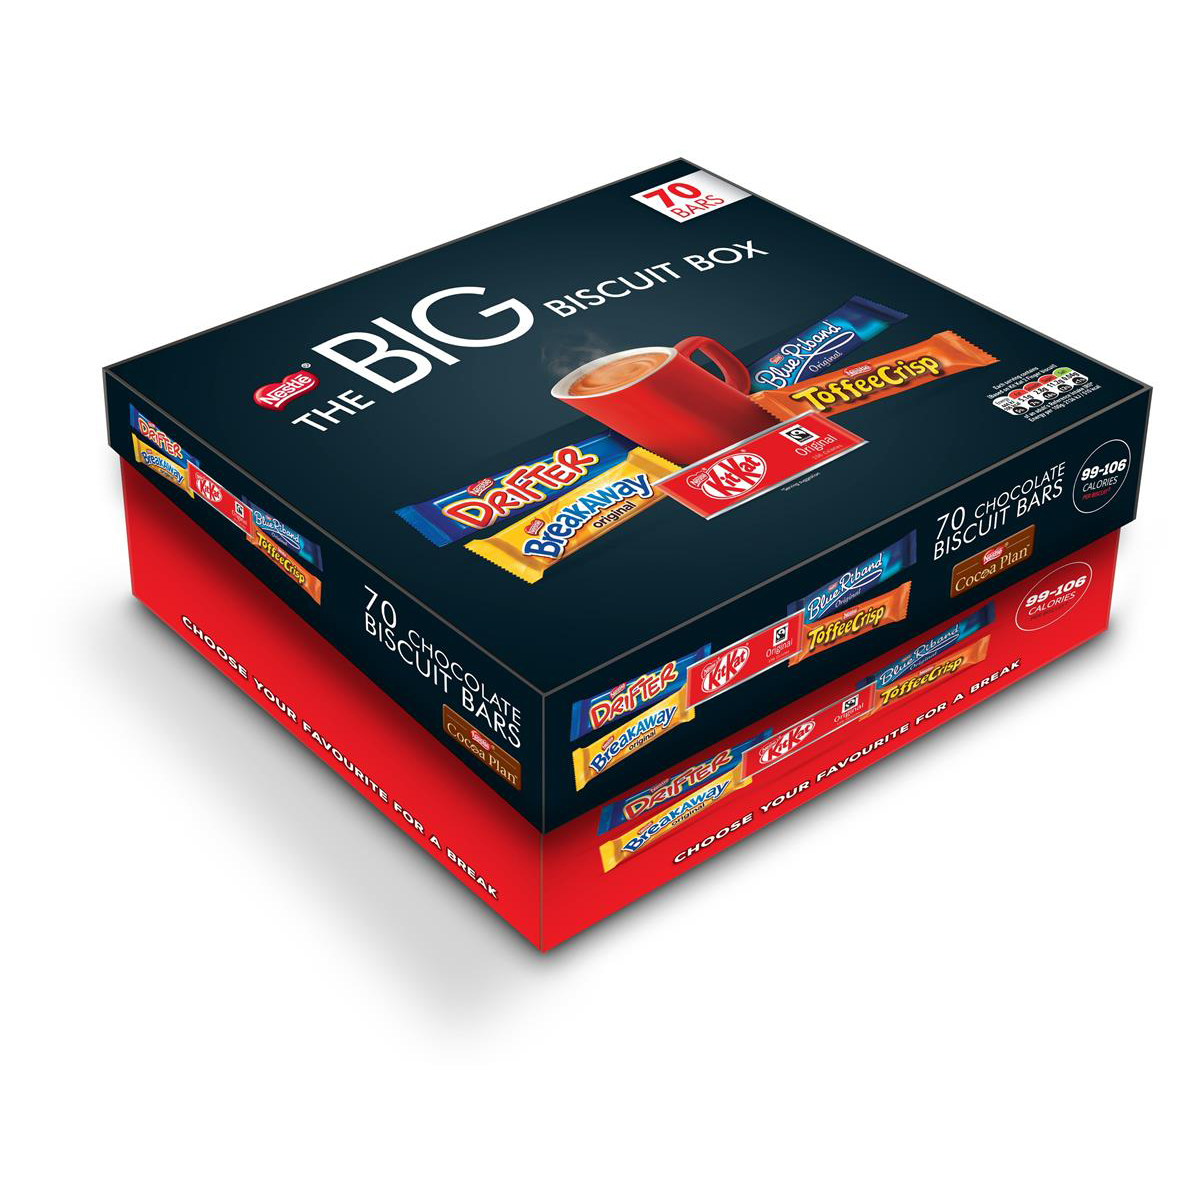 Nestle Big Chocolate Box Assorted 99 Calories Per Bar Ref 12313923 [Pack 70]